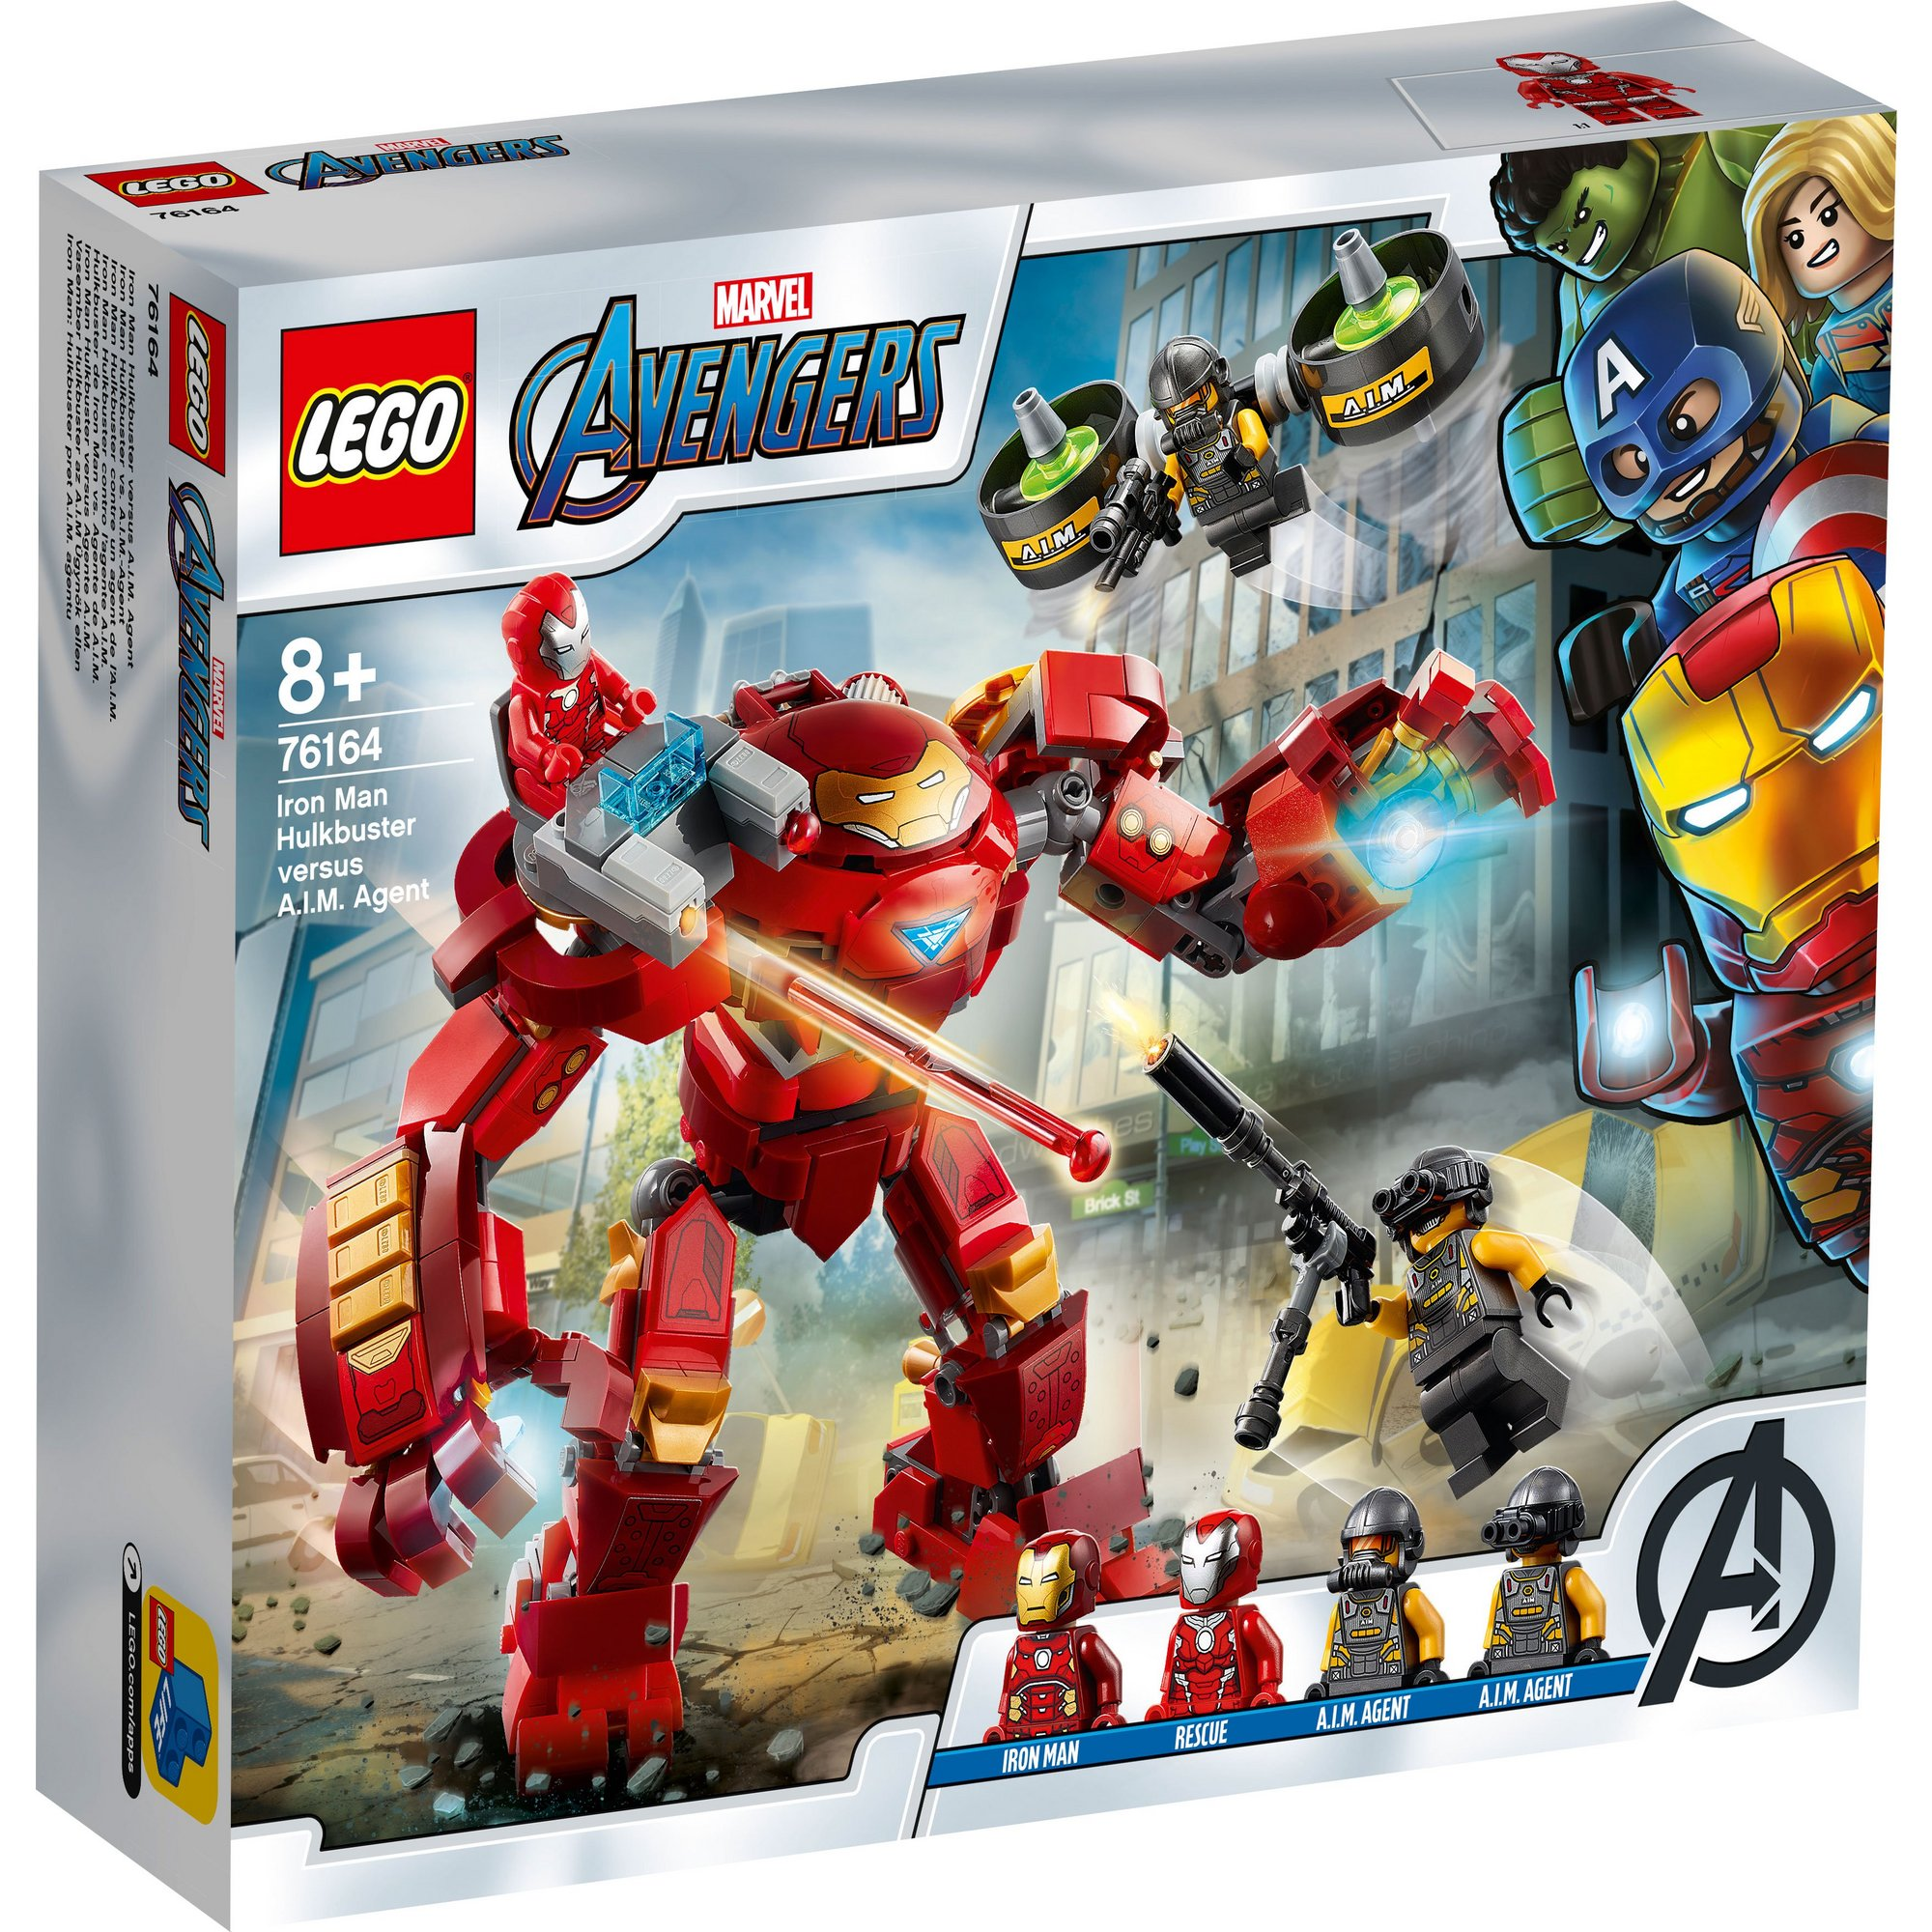 Image of LEGO Super Heroes Iron Man Hulkbuster